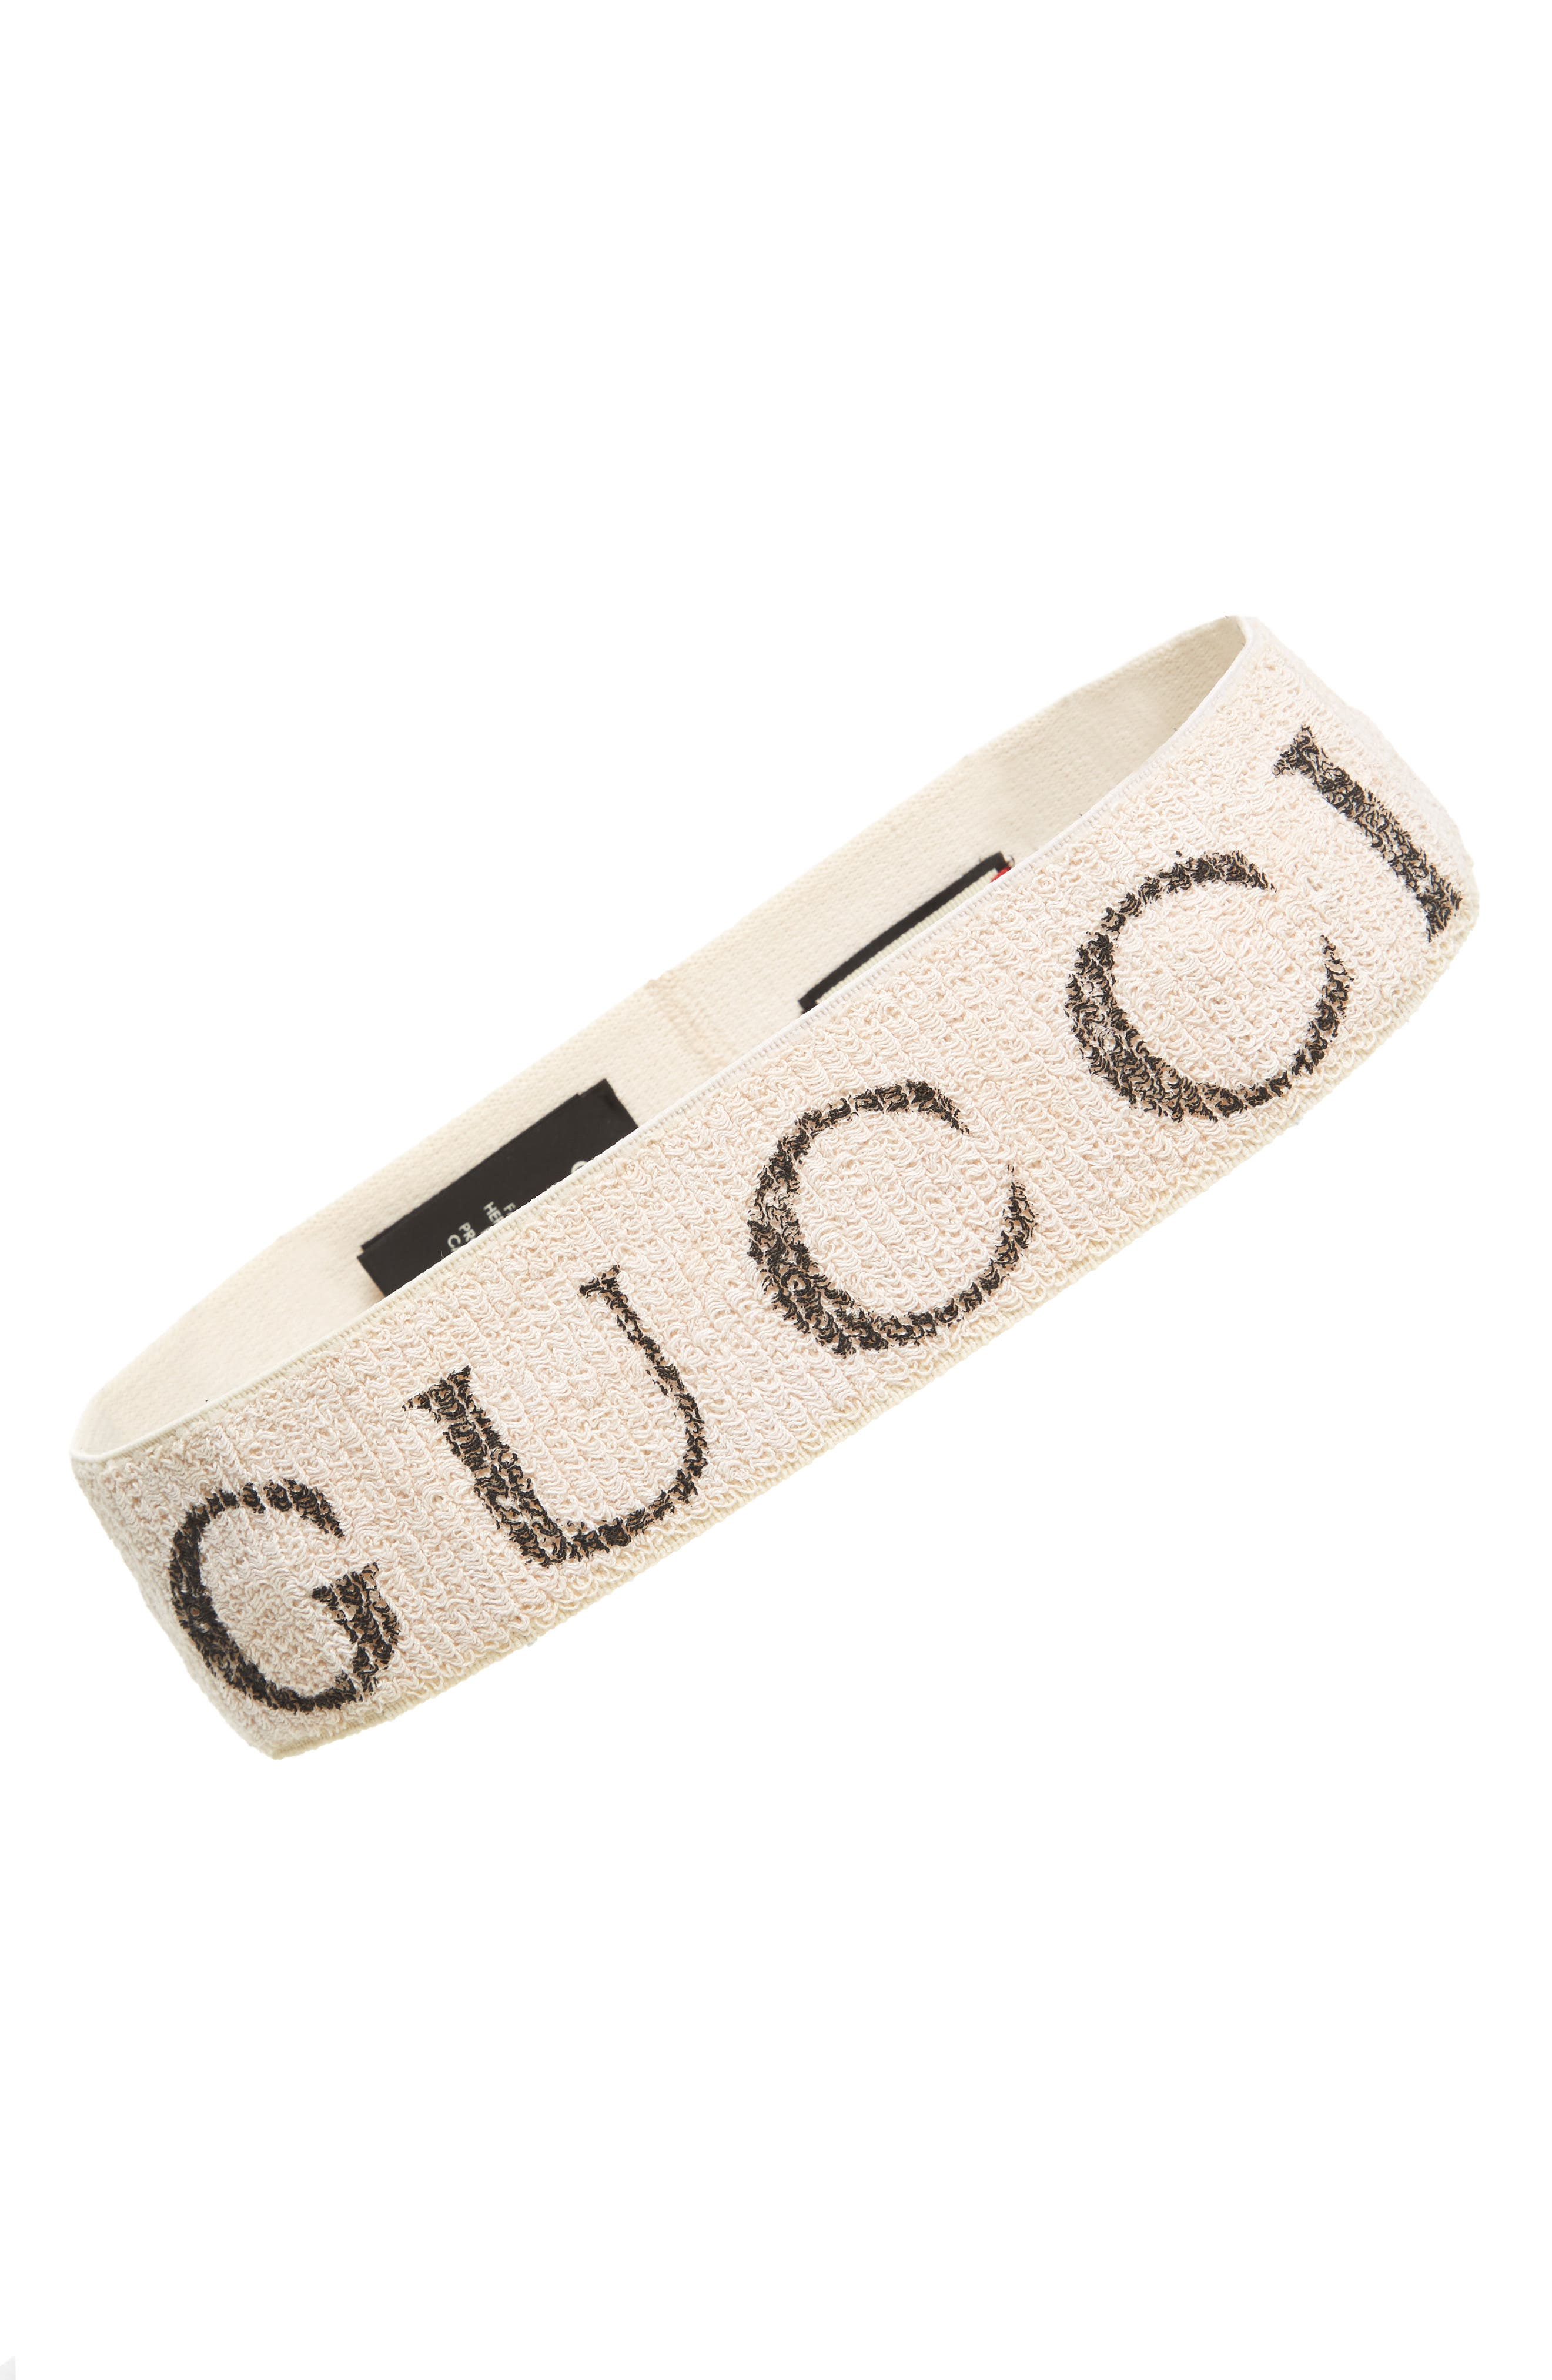 GUCCI, Teban Logo Headband, Main thumbnail 1, color, WHITE